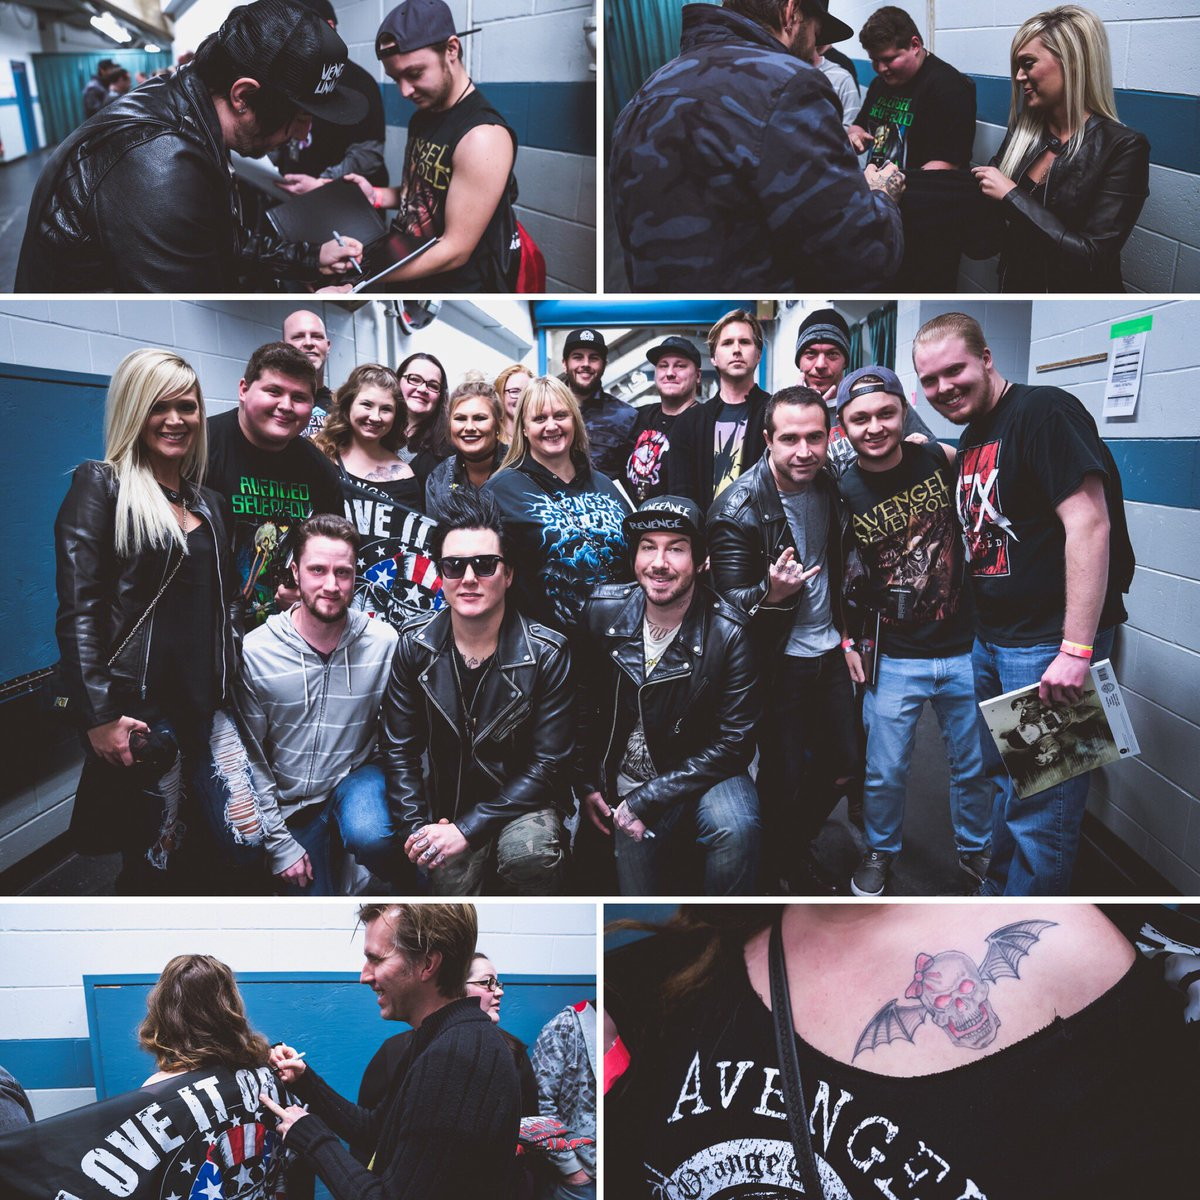 Avenged Sevenfold On Twitter Deathnation Meet And Greet Peoria